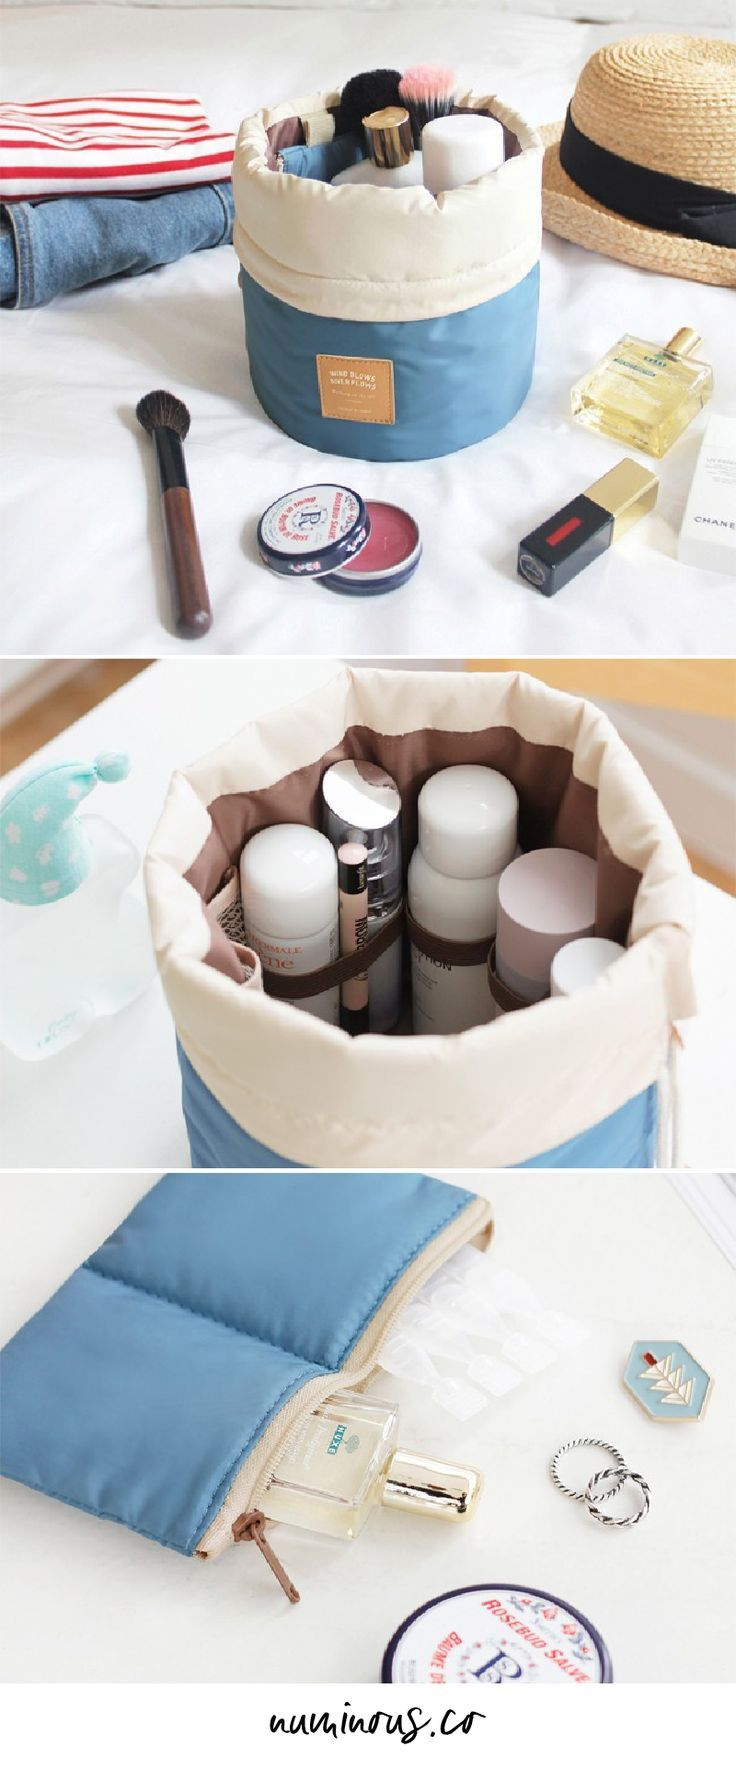 Traveling with makeup can be so difficult and messy! This cosmetic organizer will be a lifesaver for you. It keeps all of your cosmetics organized and easily accessible so you don't have to dig through your bag to find it. I take this everywhere with me, not just on long trips. Go get one so you can stop digging through your bag whenever you need to touch up your makeup!